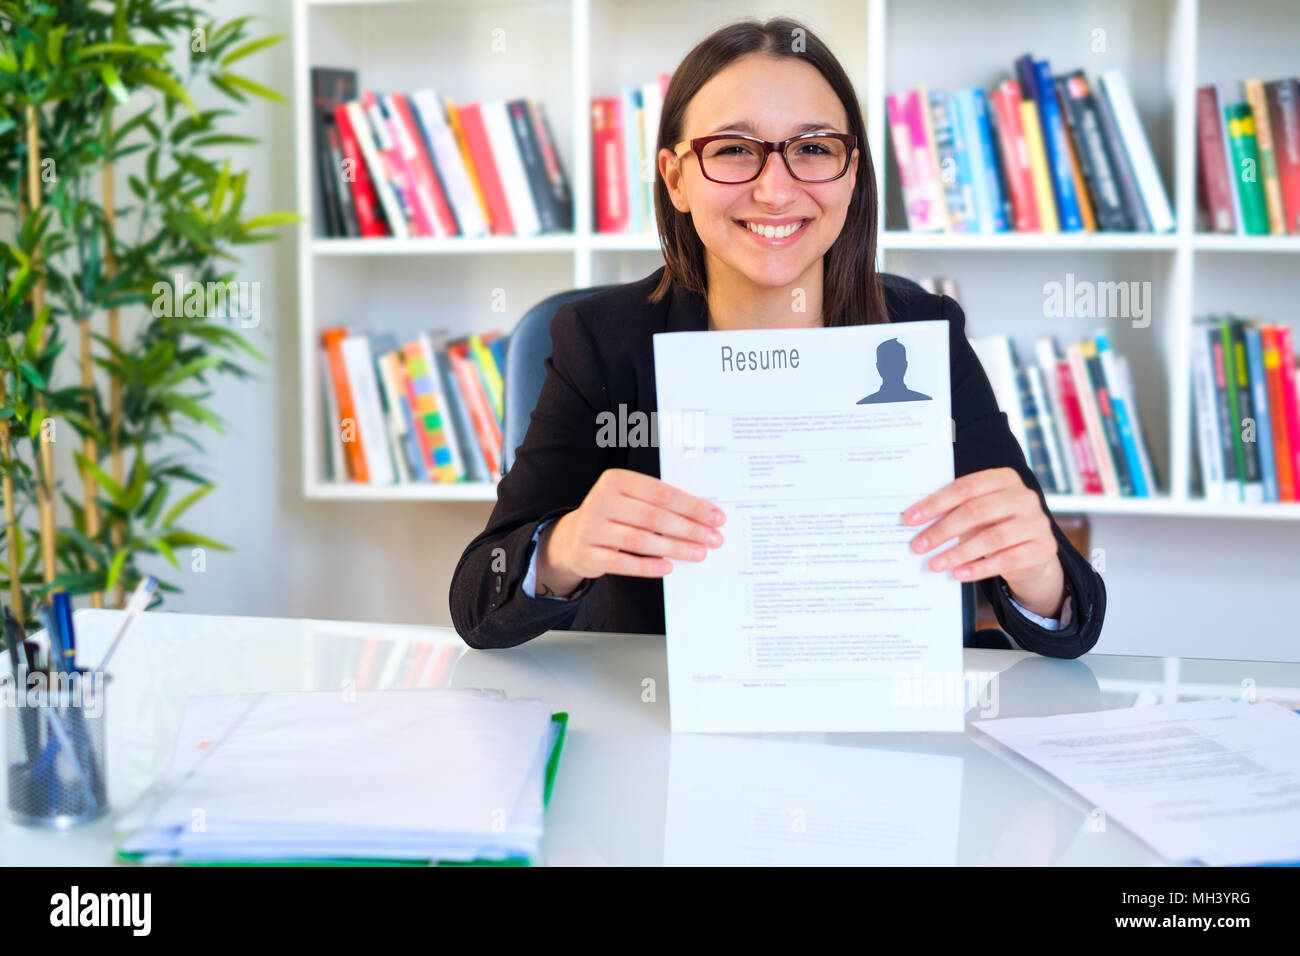 Woman searching job and showing her cv resume - Stock Image